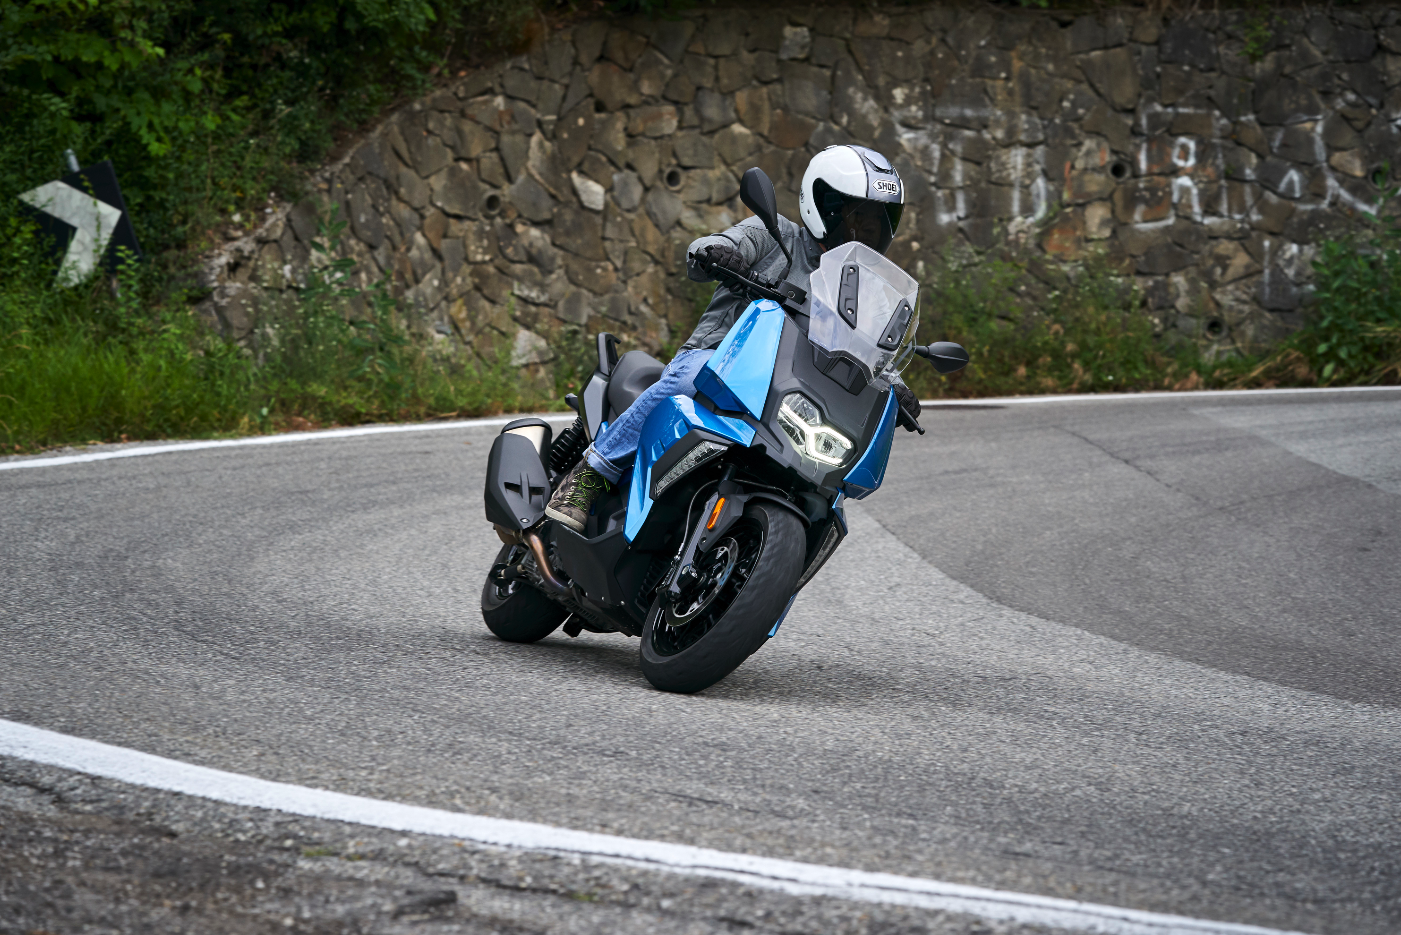 BMW Motorrad eerste in NL met private lease